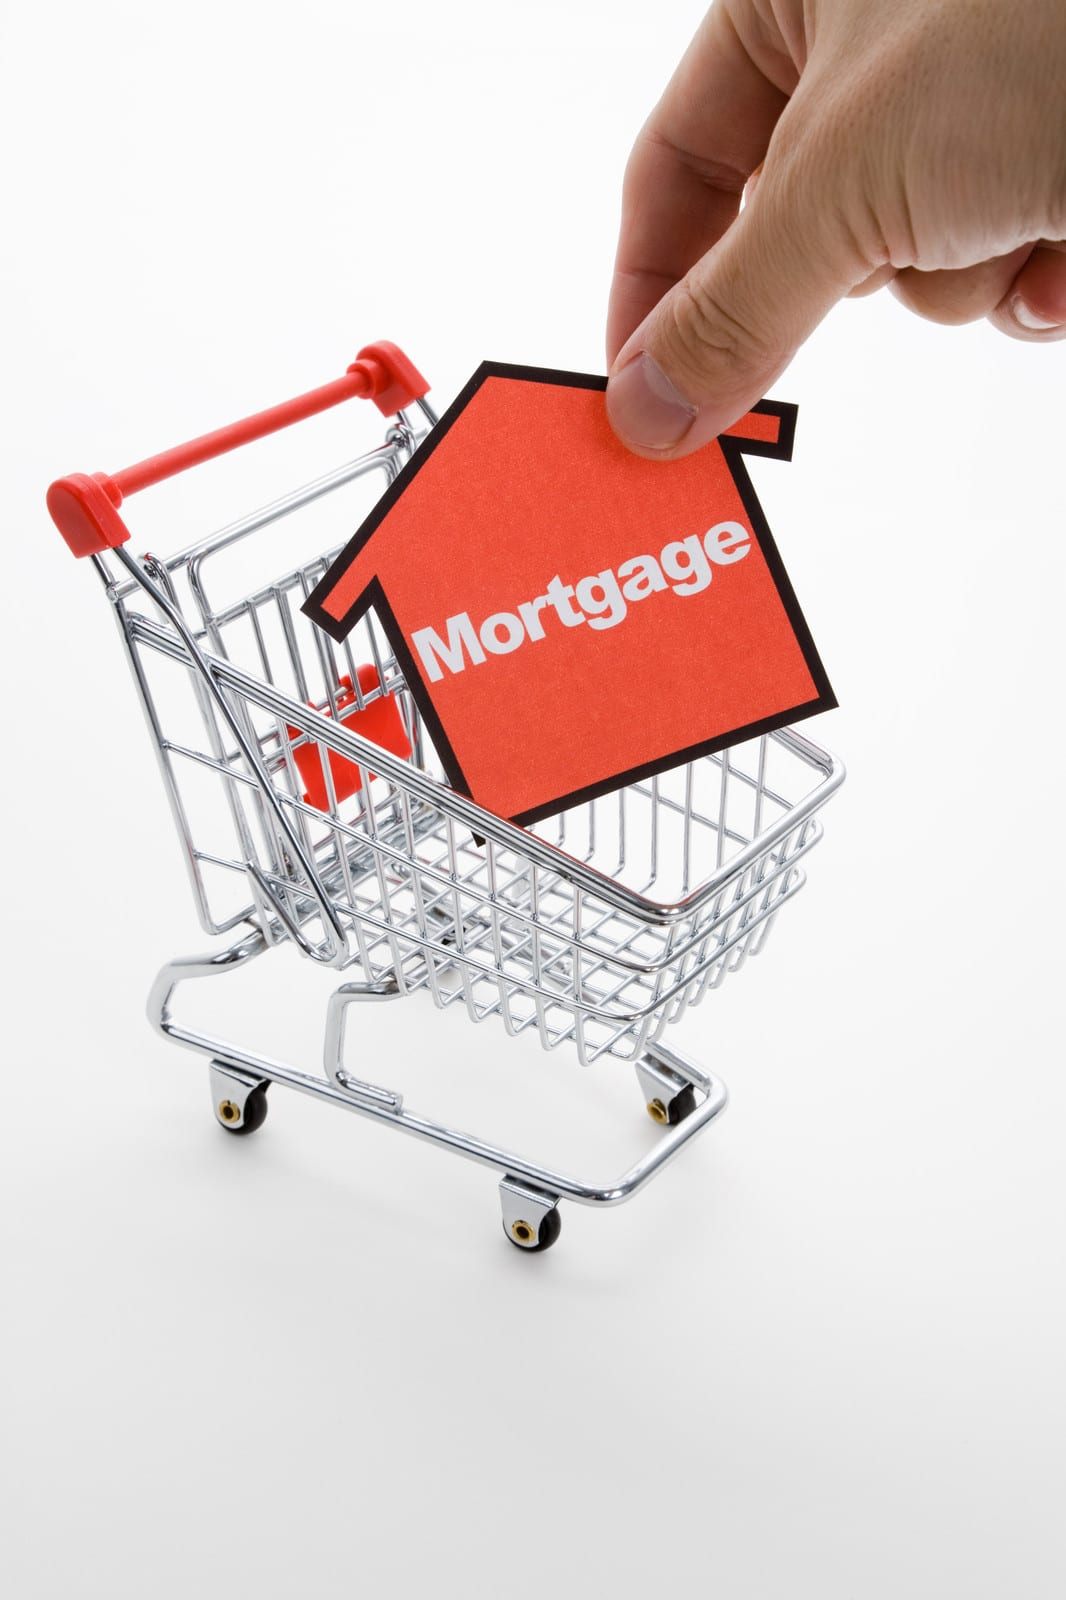 Take advantage of record-low Mortgage Rates